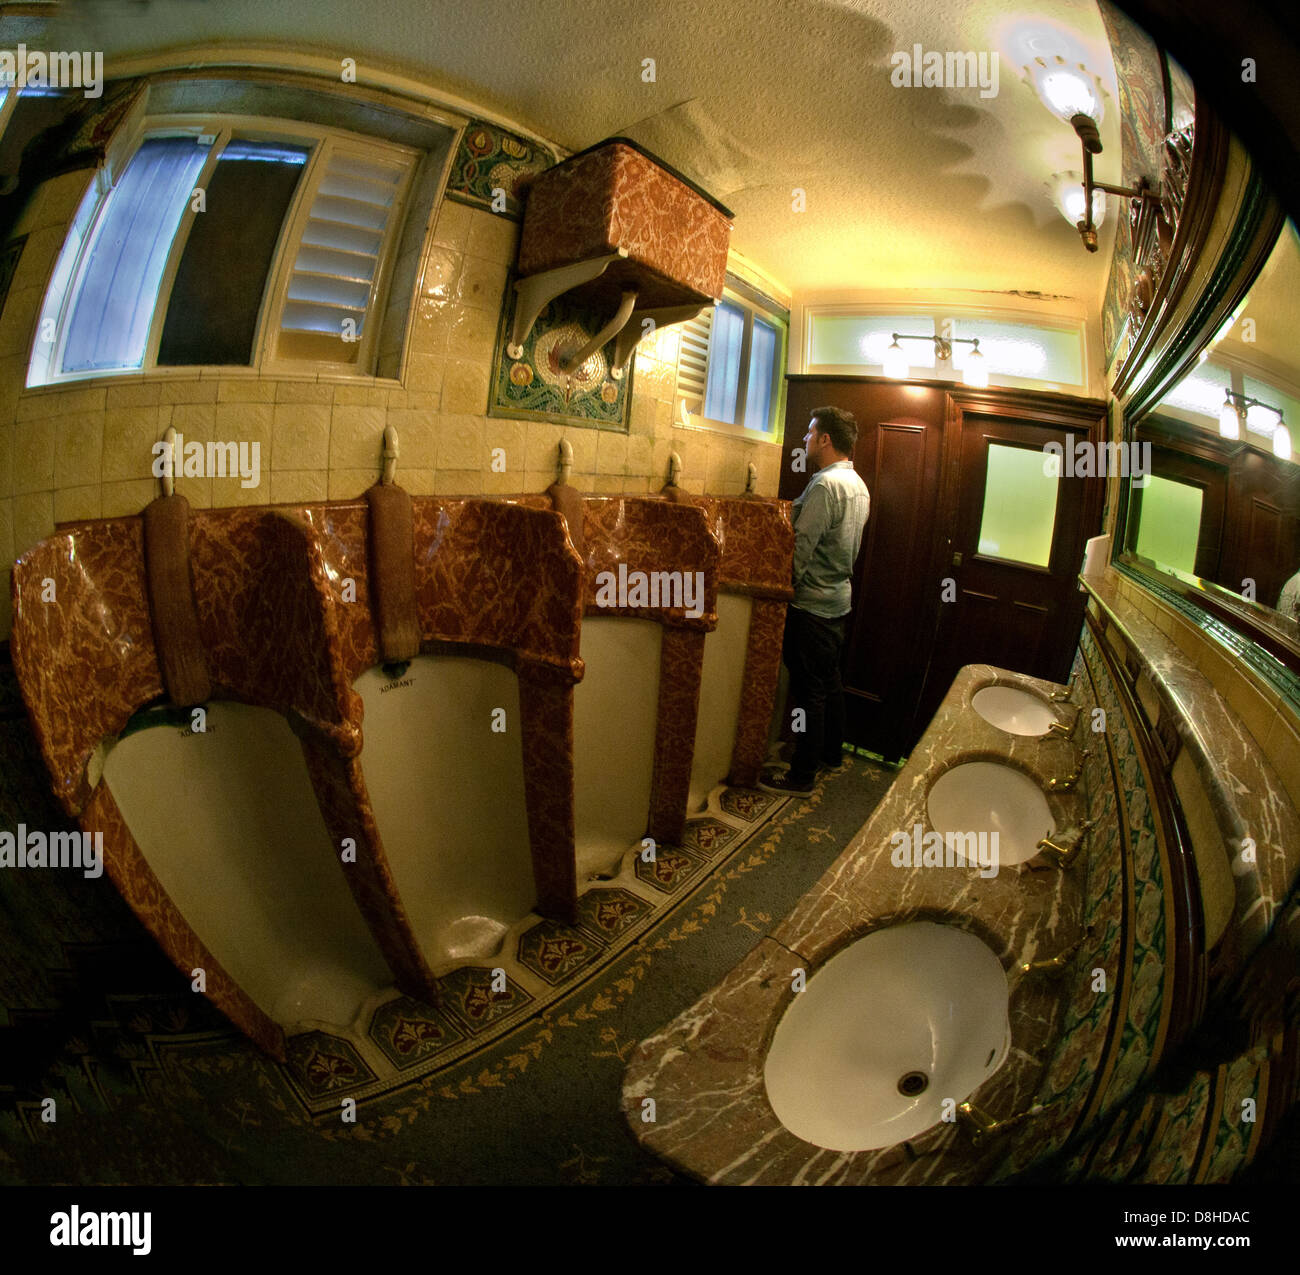 The famous Hope St Phillarmonic Pub Urinals, Liverpool England UK - Stock Image